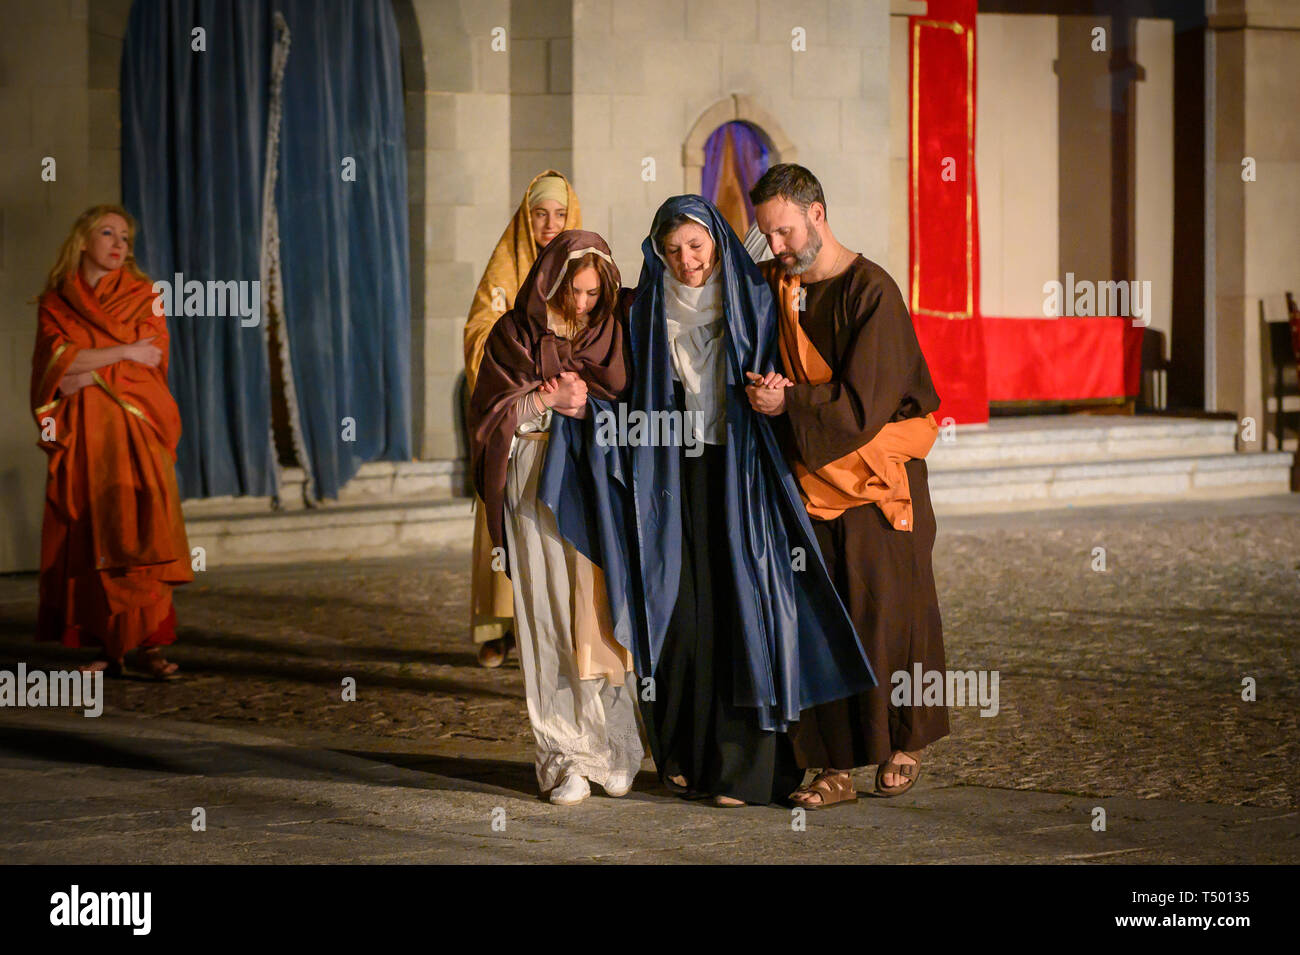 Brunete, Spain - April 11, 2019: Popular play of The Passion of Christ in the Plaza Mayor of the town. Virgin Mary consoled while condemning Jesus. - Stock Image